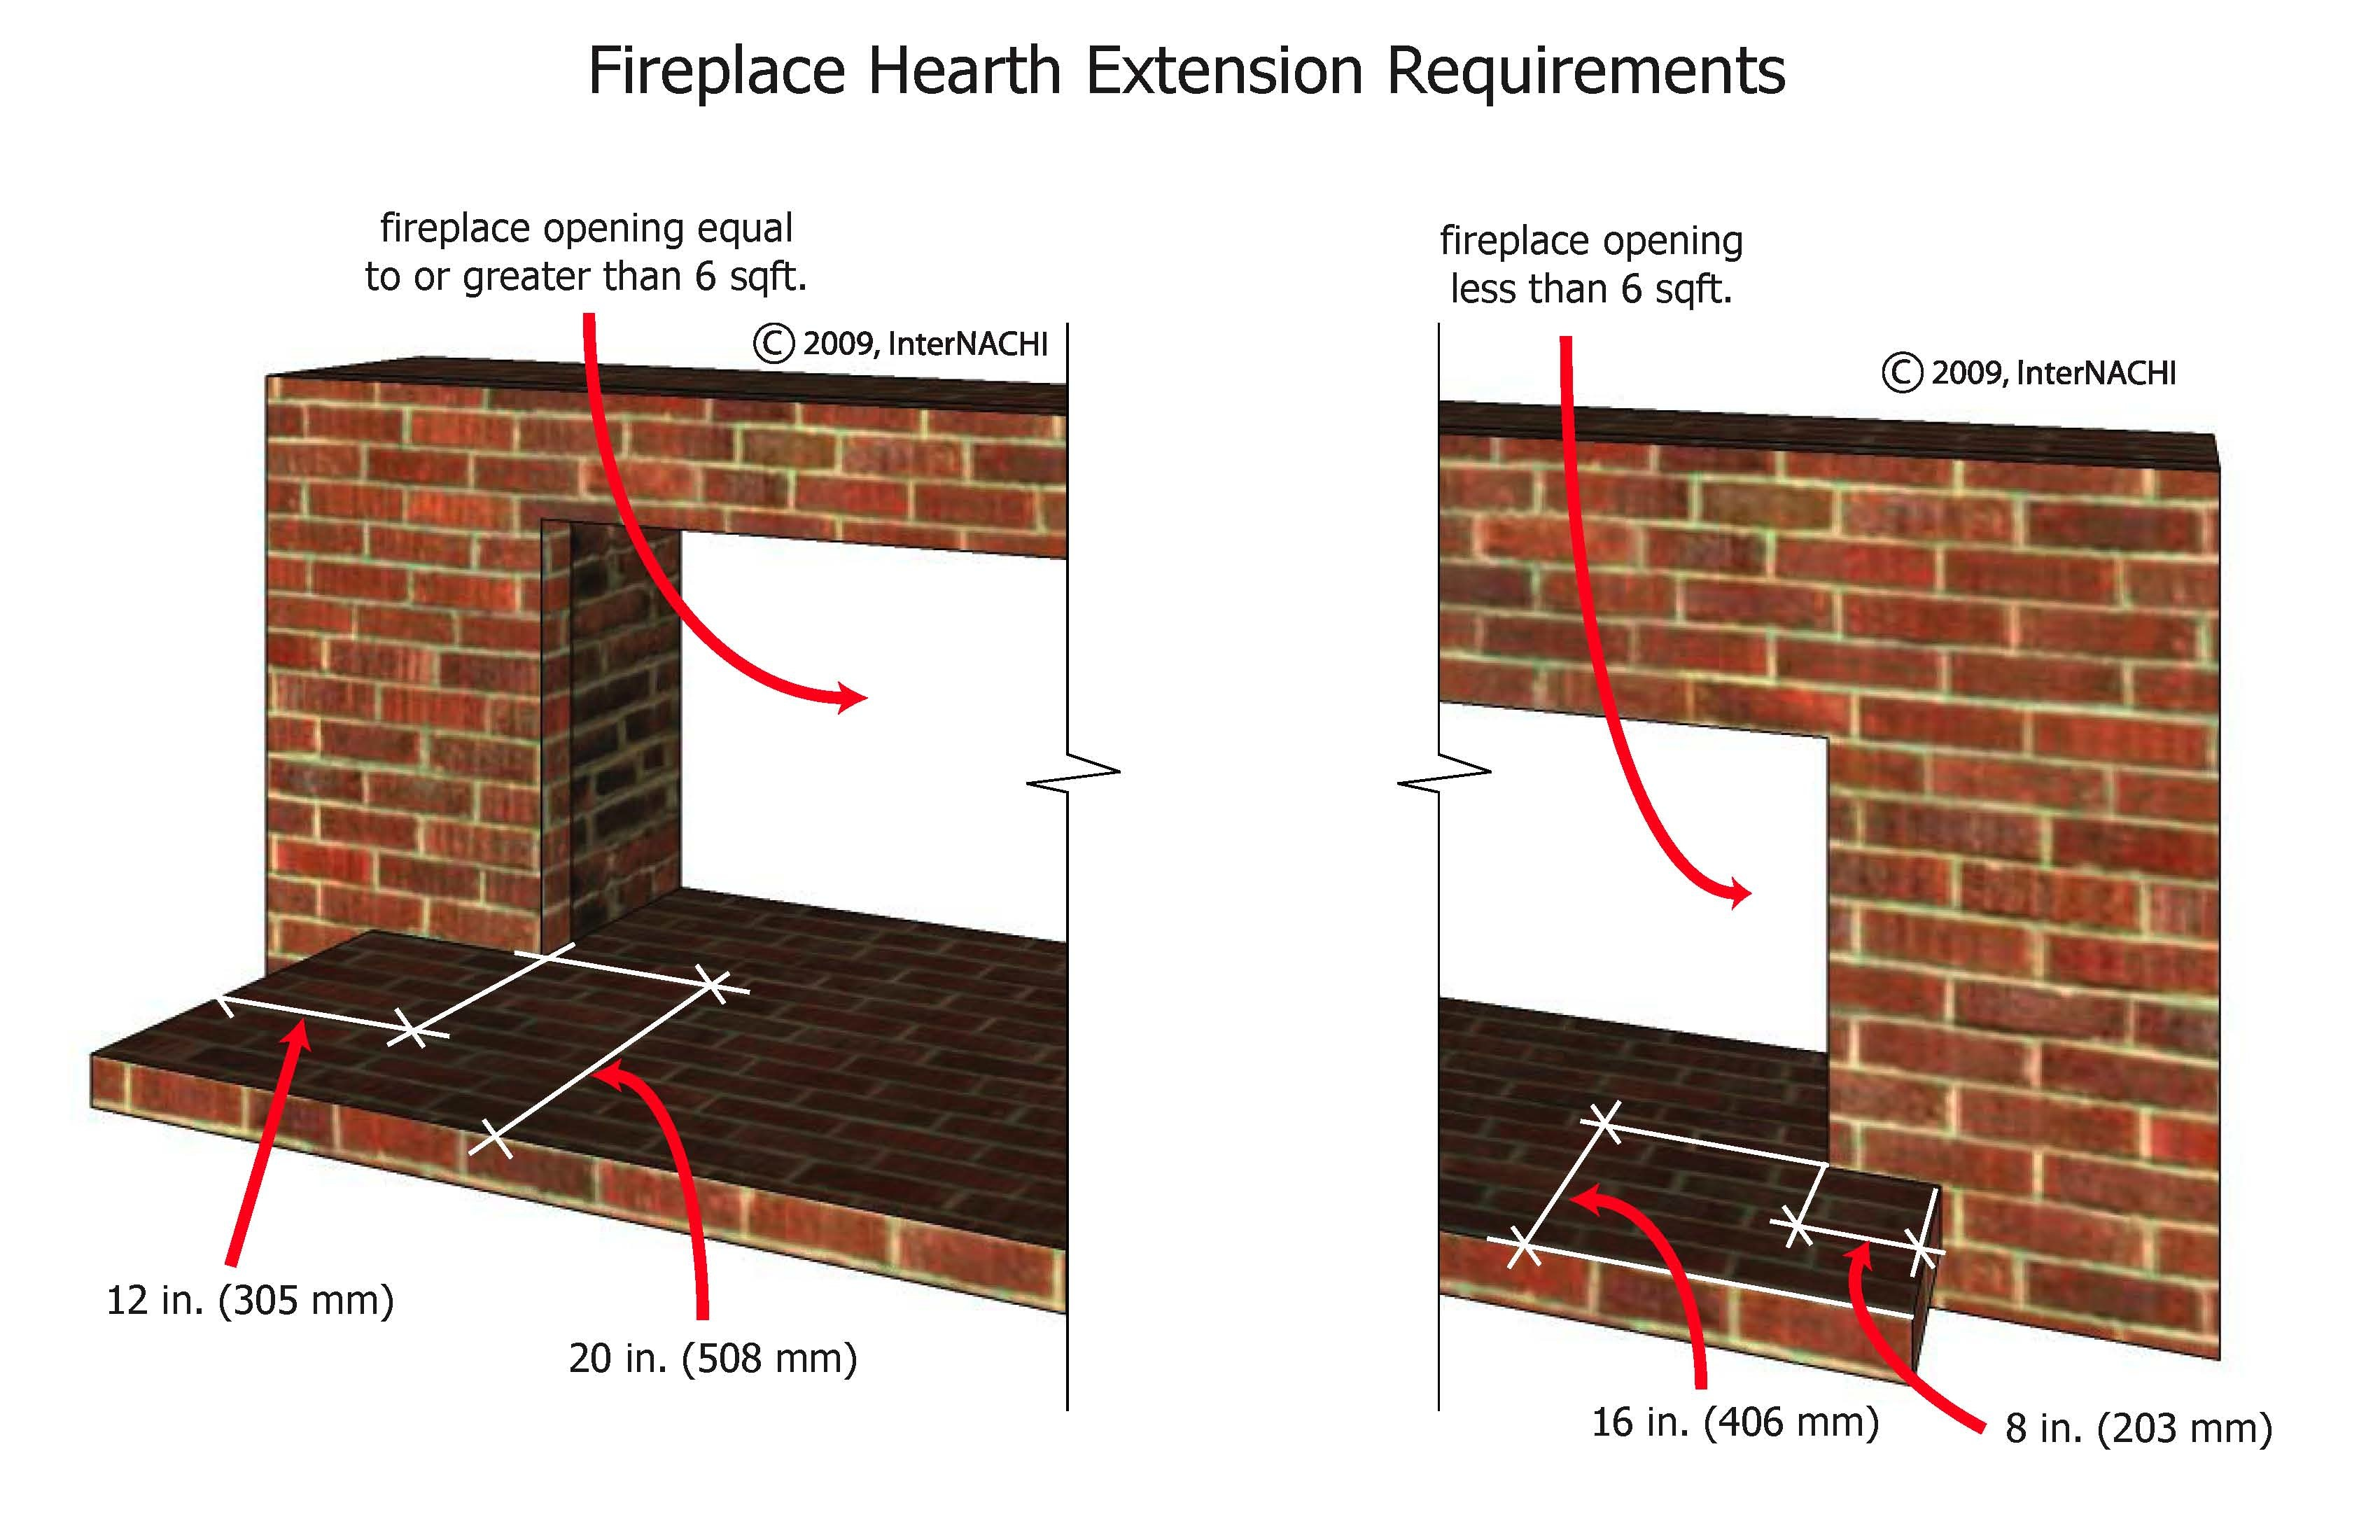 masonry fireplace hearth is both floor and projection